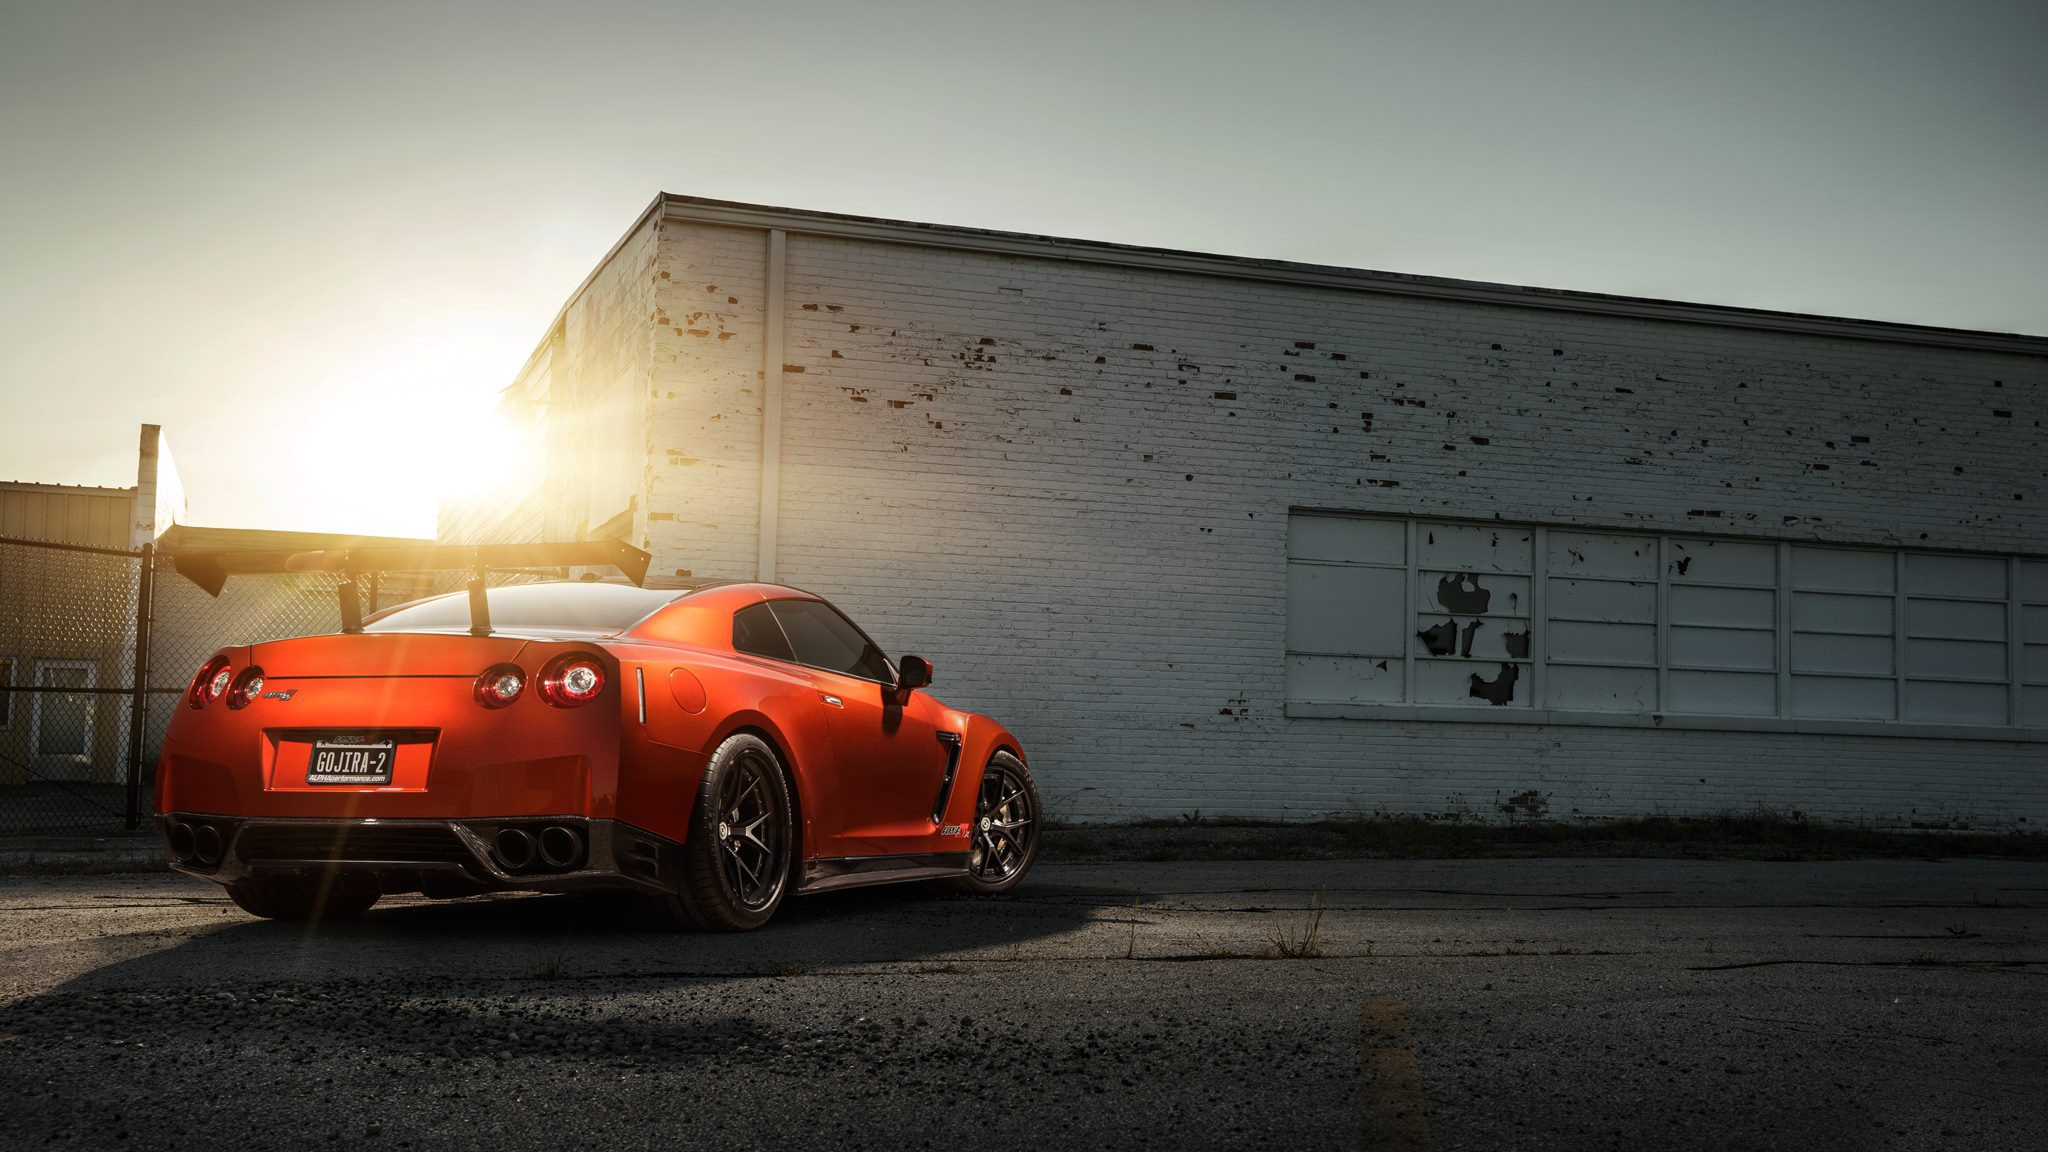 Nissan GTR HD, HD Cars, 4k Wallpapers, Images, Backgrounds ...